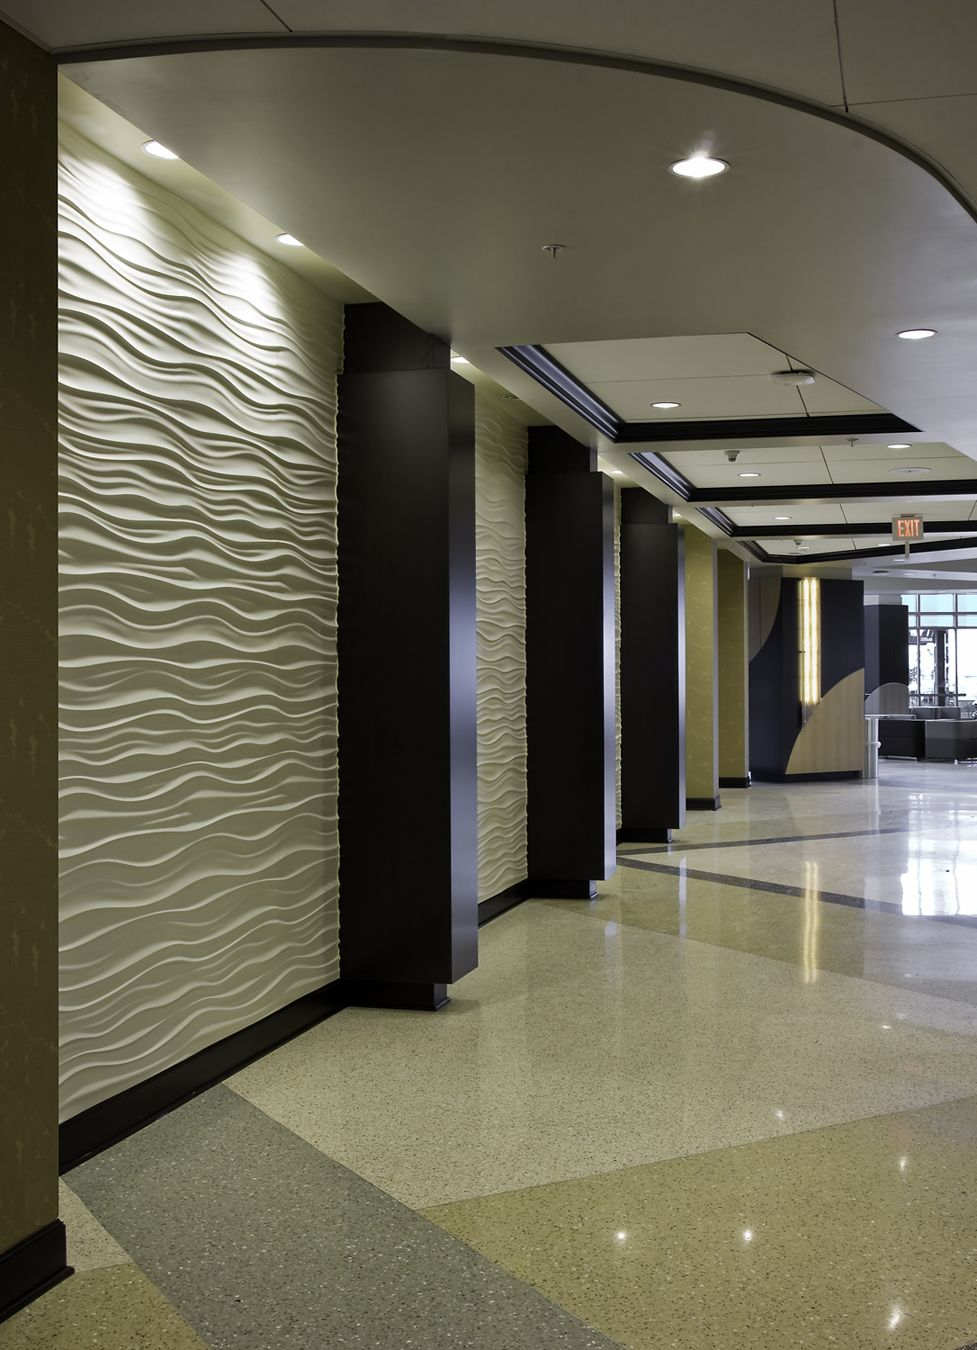 Hospital Corridor Lighting Design: Help To Model Wall With Wavy Engraving In 3ds